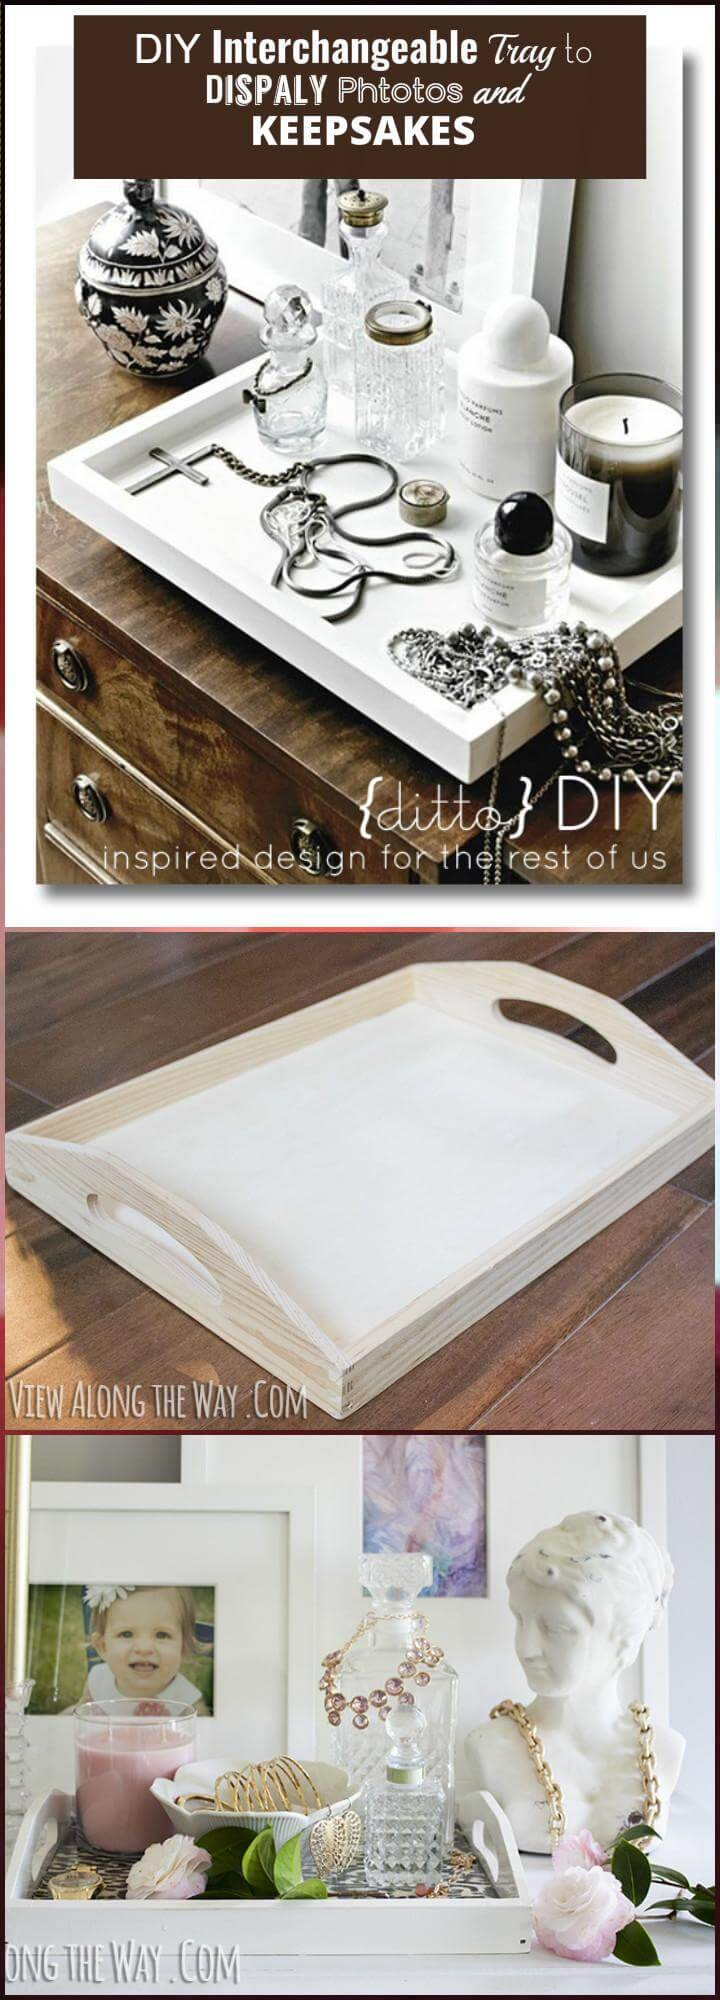 DIY interchangeable try to display photos and keepsakes